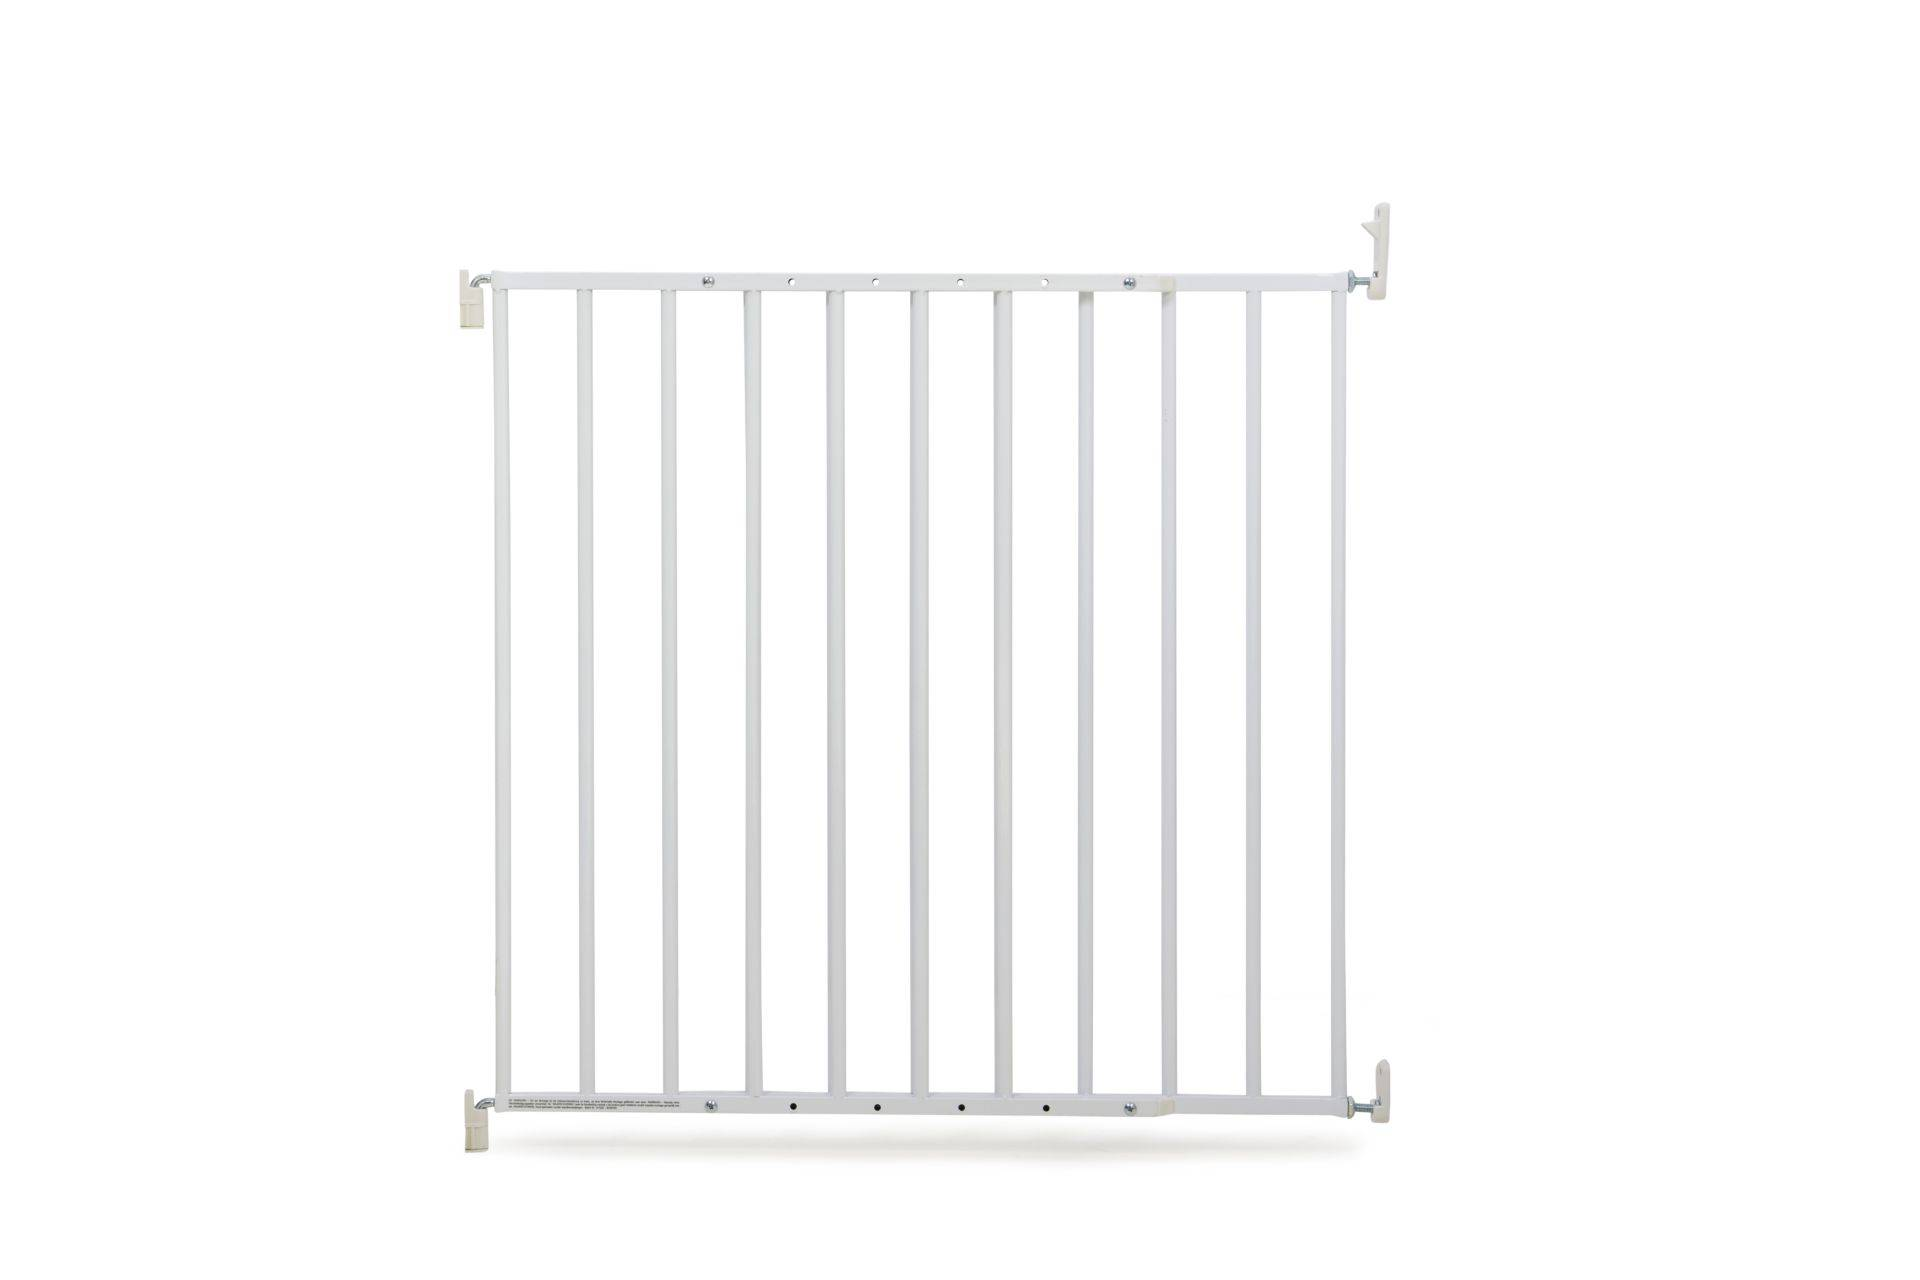 Geuther Metal door protection gate;